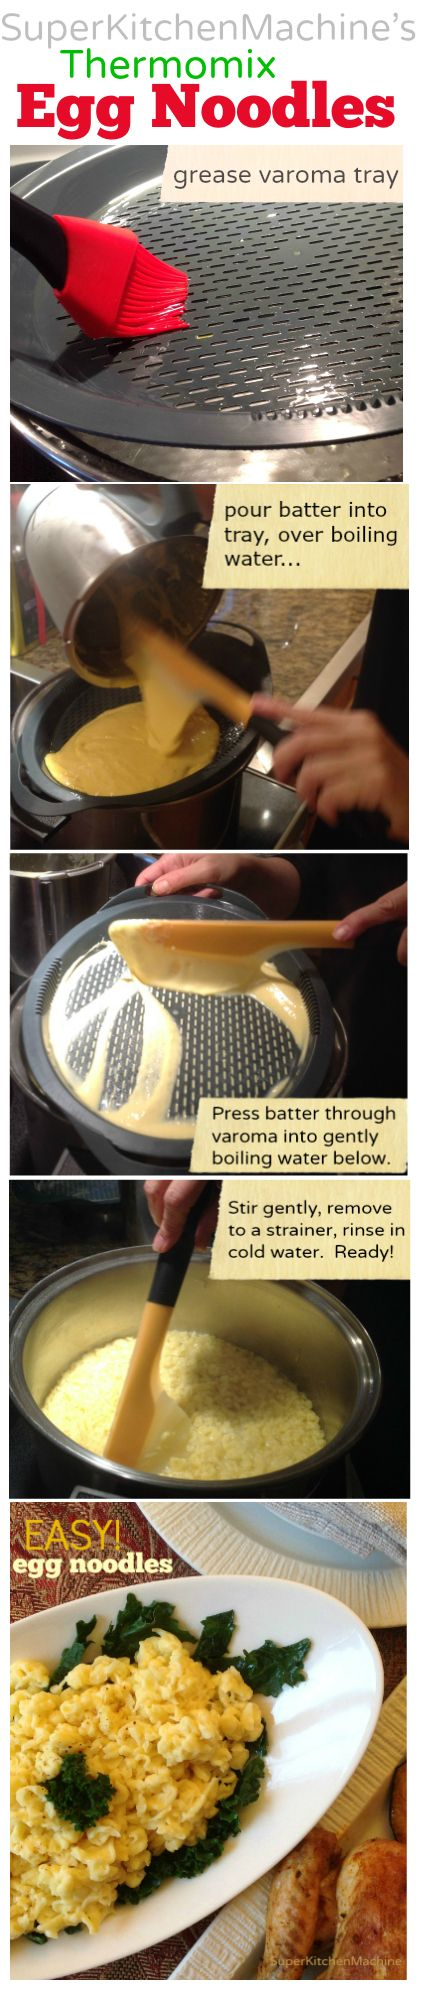 Super Kitchen Kits — Spatula tips for making healthy, easy Thermomix egg noodles recipe